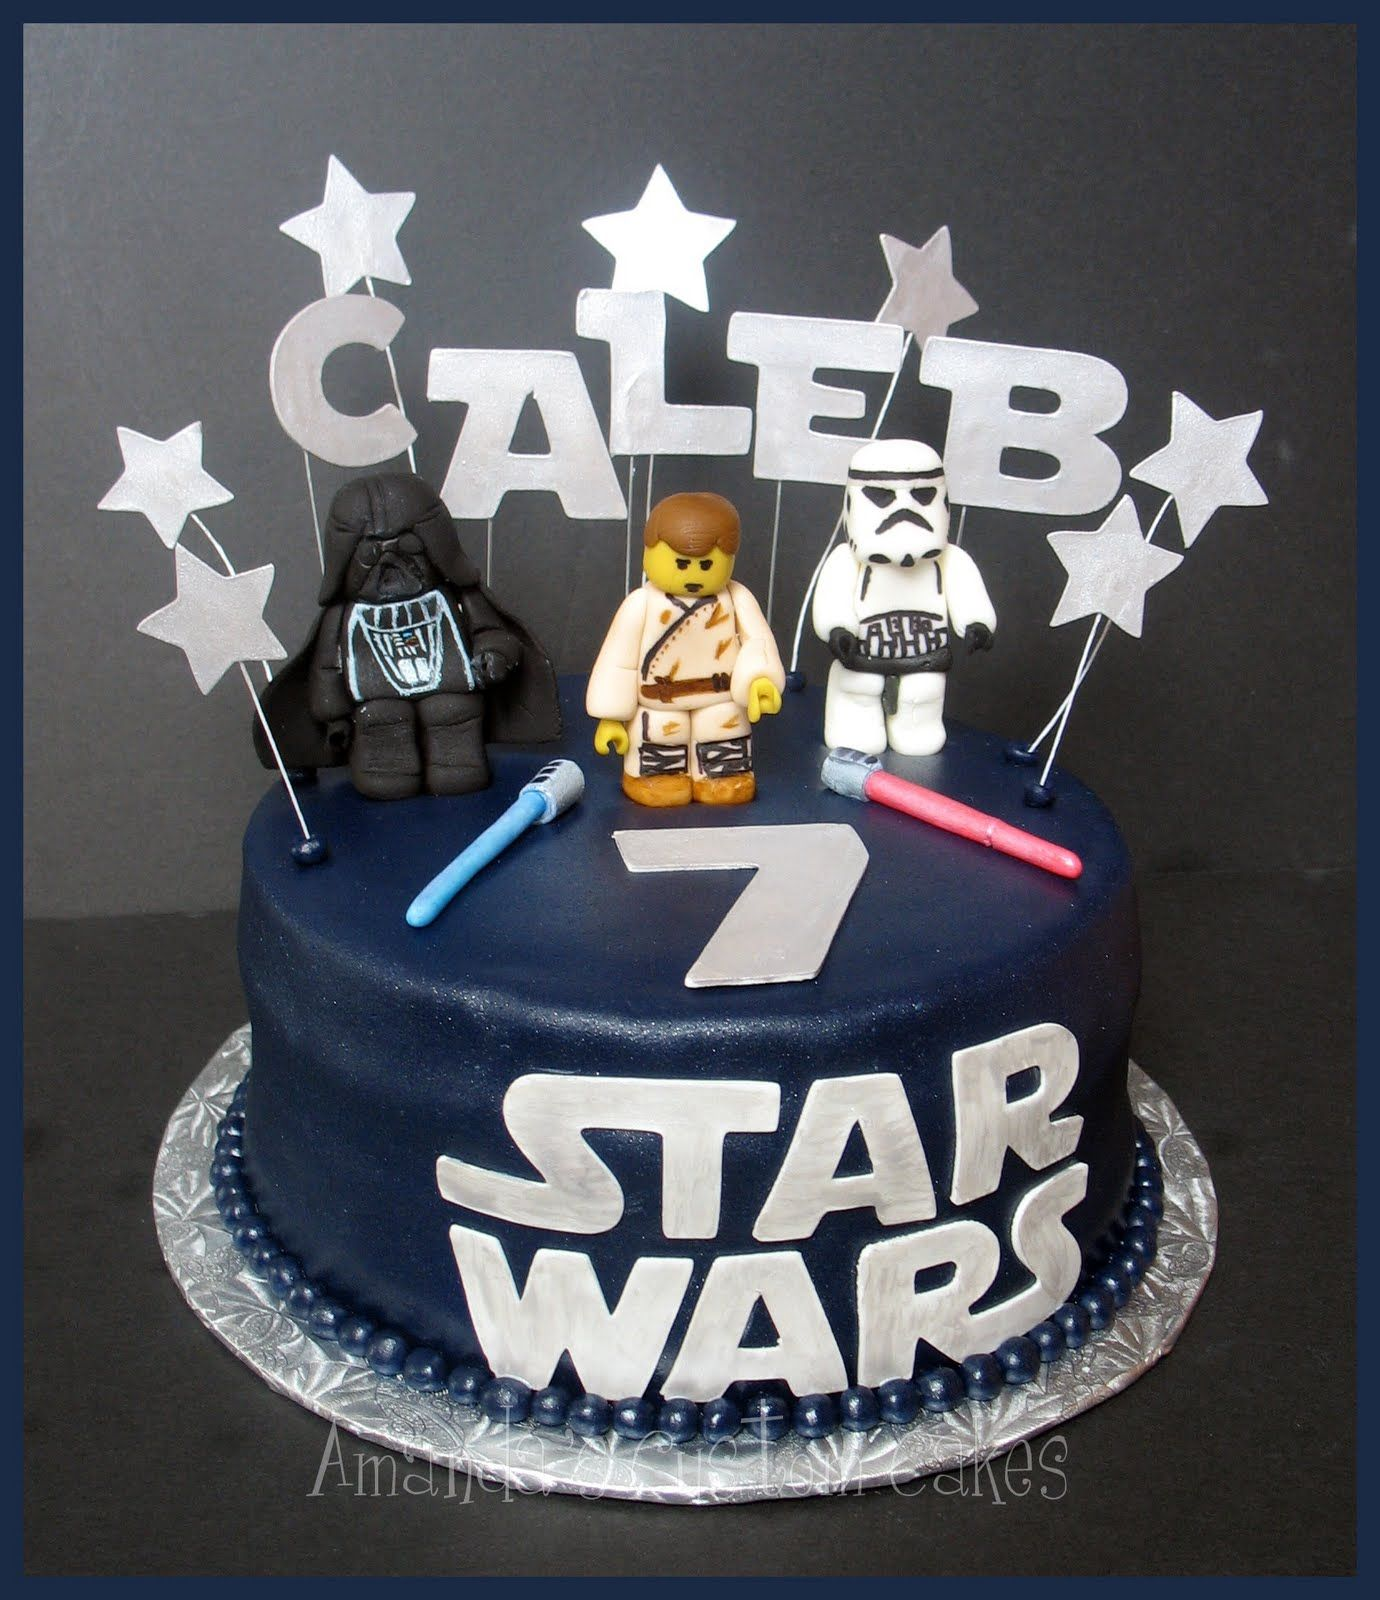 Lego Star Wars Star Wars Birthday Cake Lego Star Wars Cake War